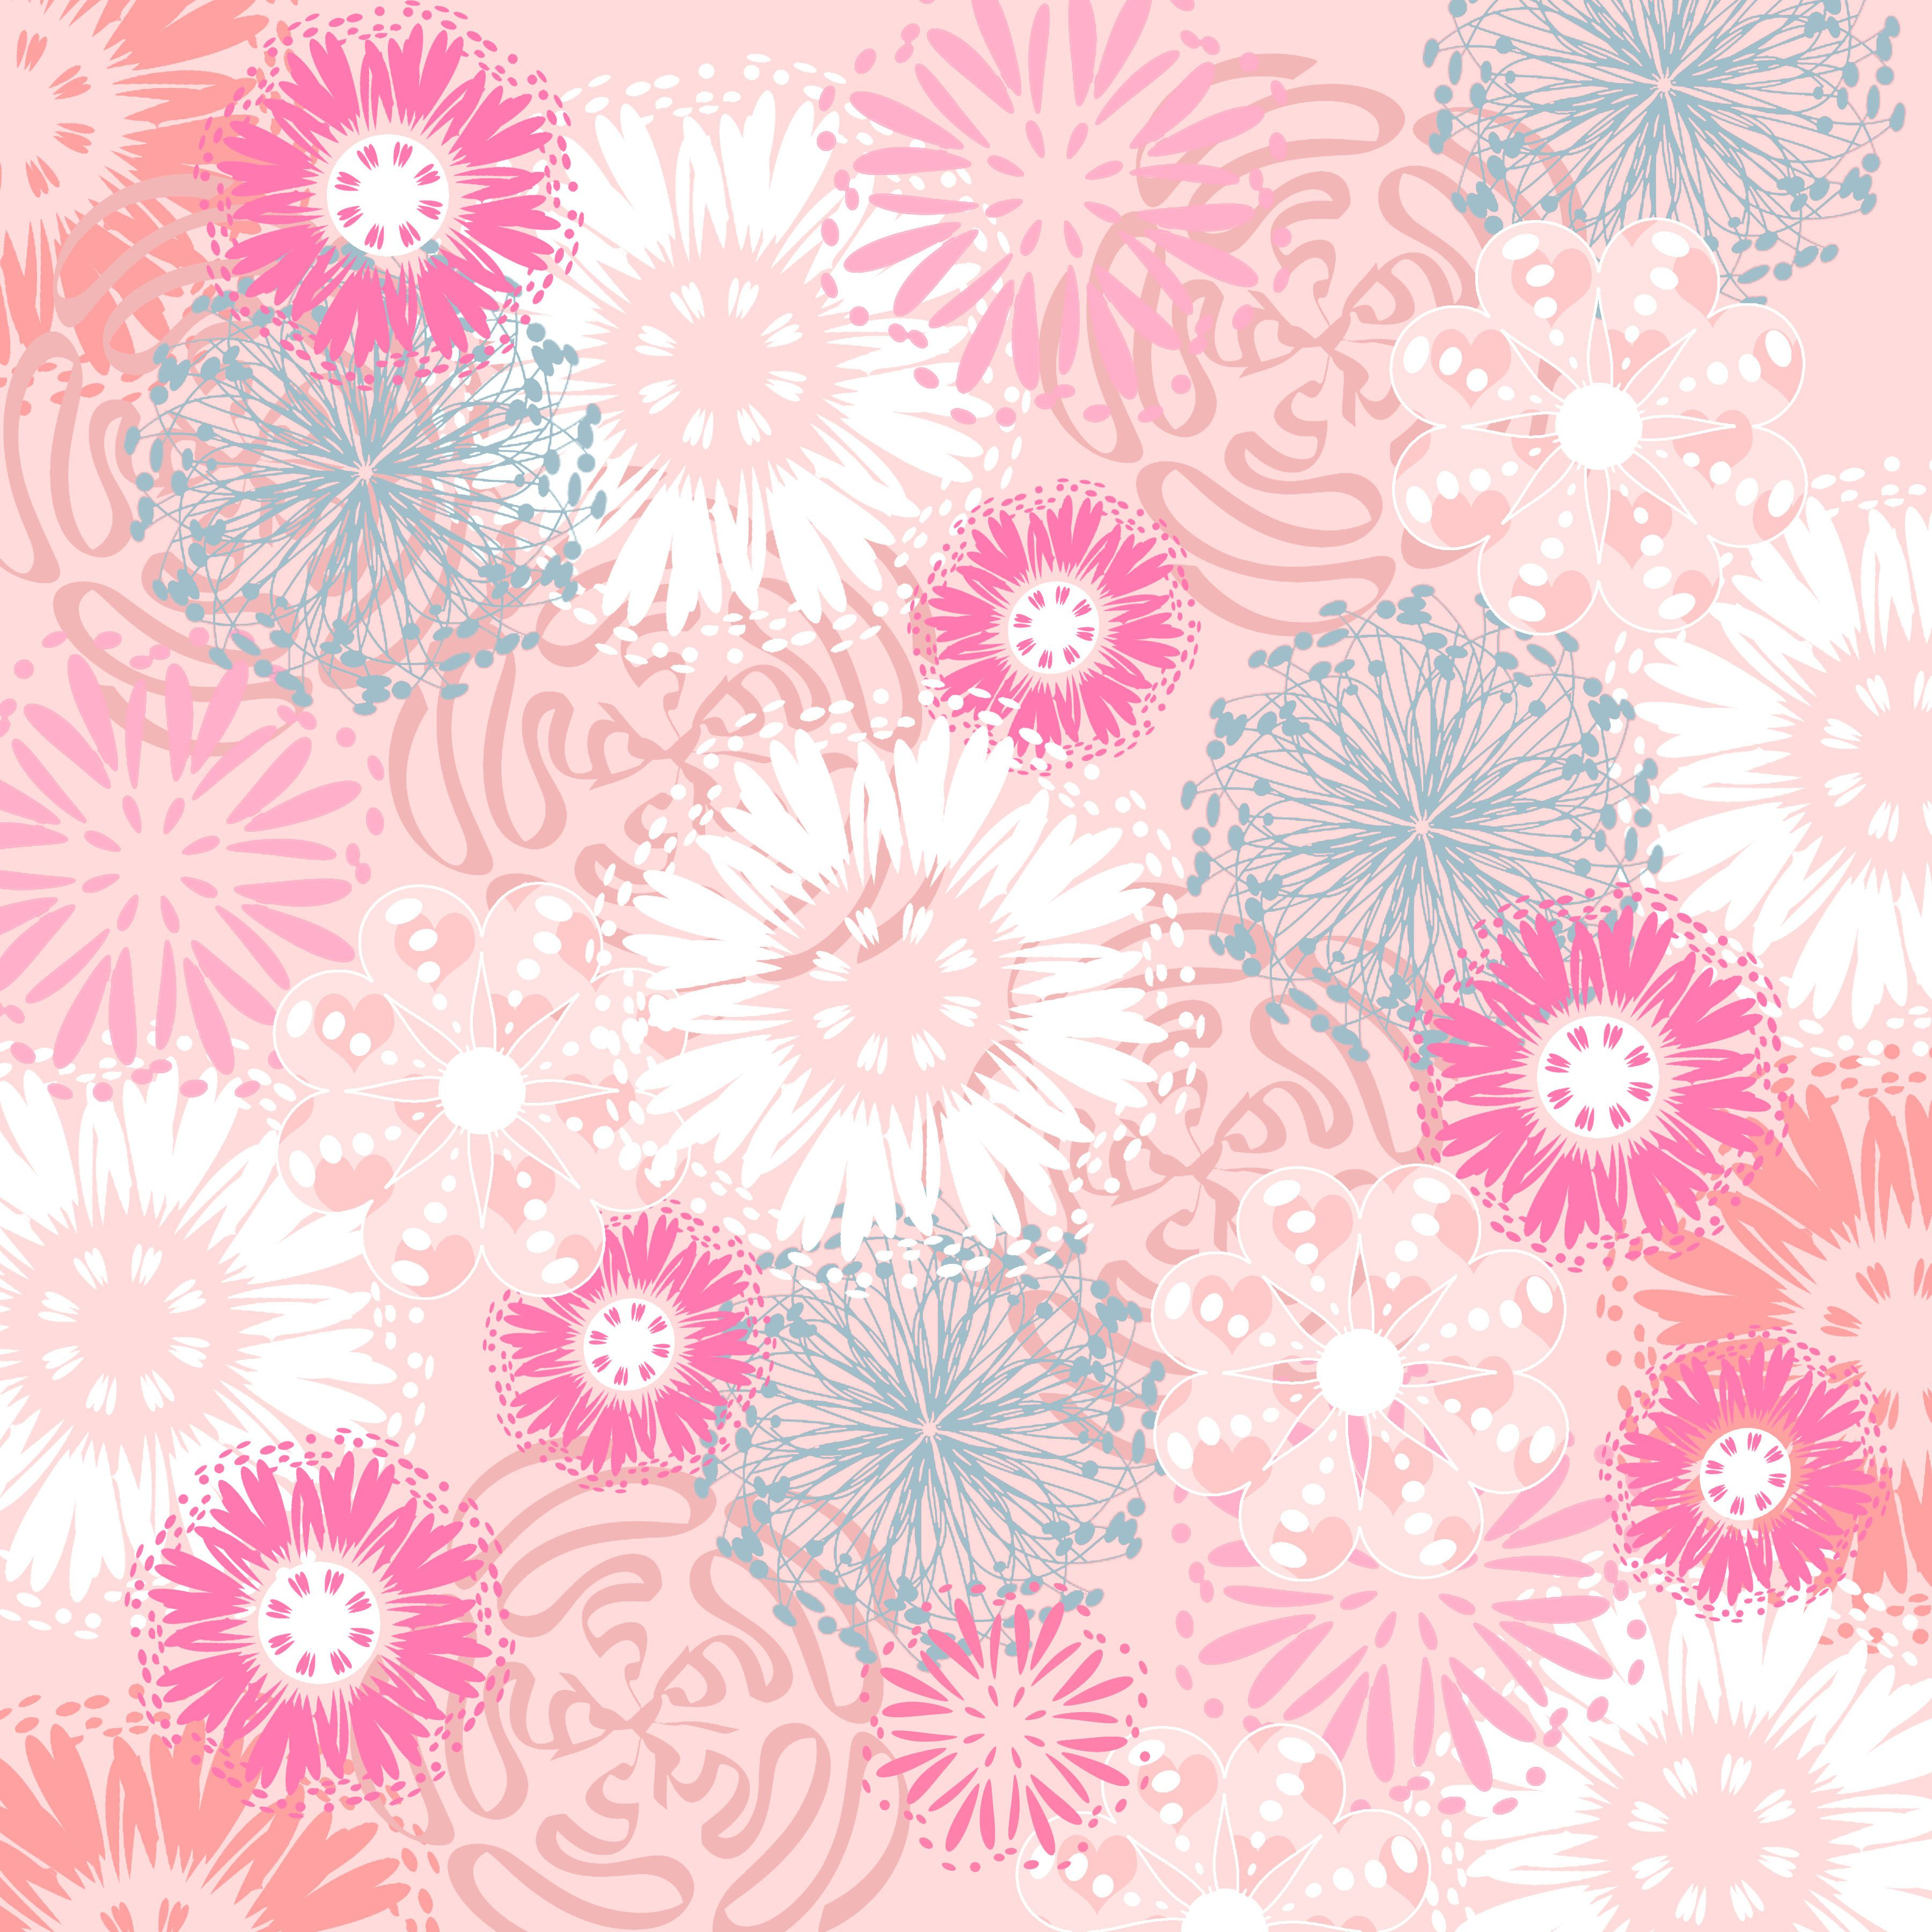 Free+Printable+Scrapbook+Paper   Scrapbook Paper   Pinterest - Free Printable Background Pages